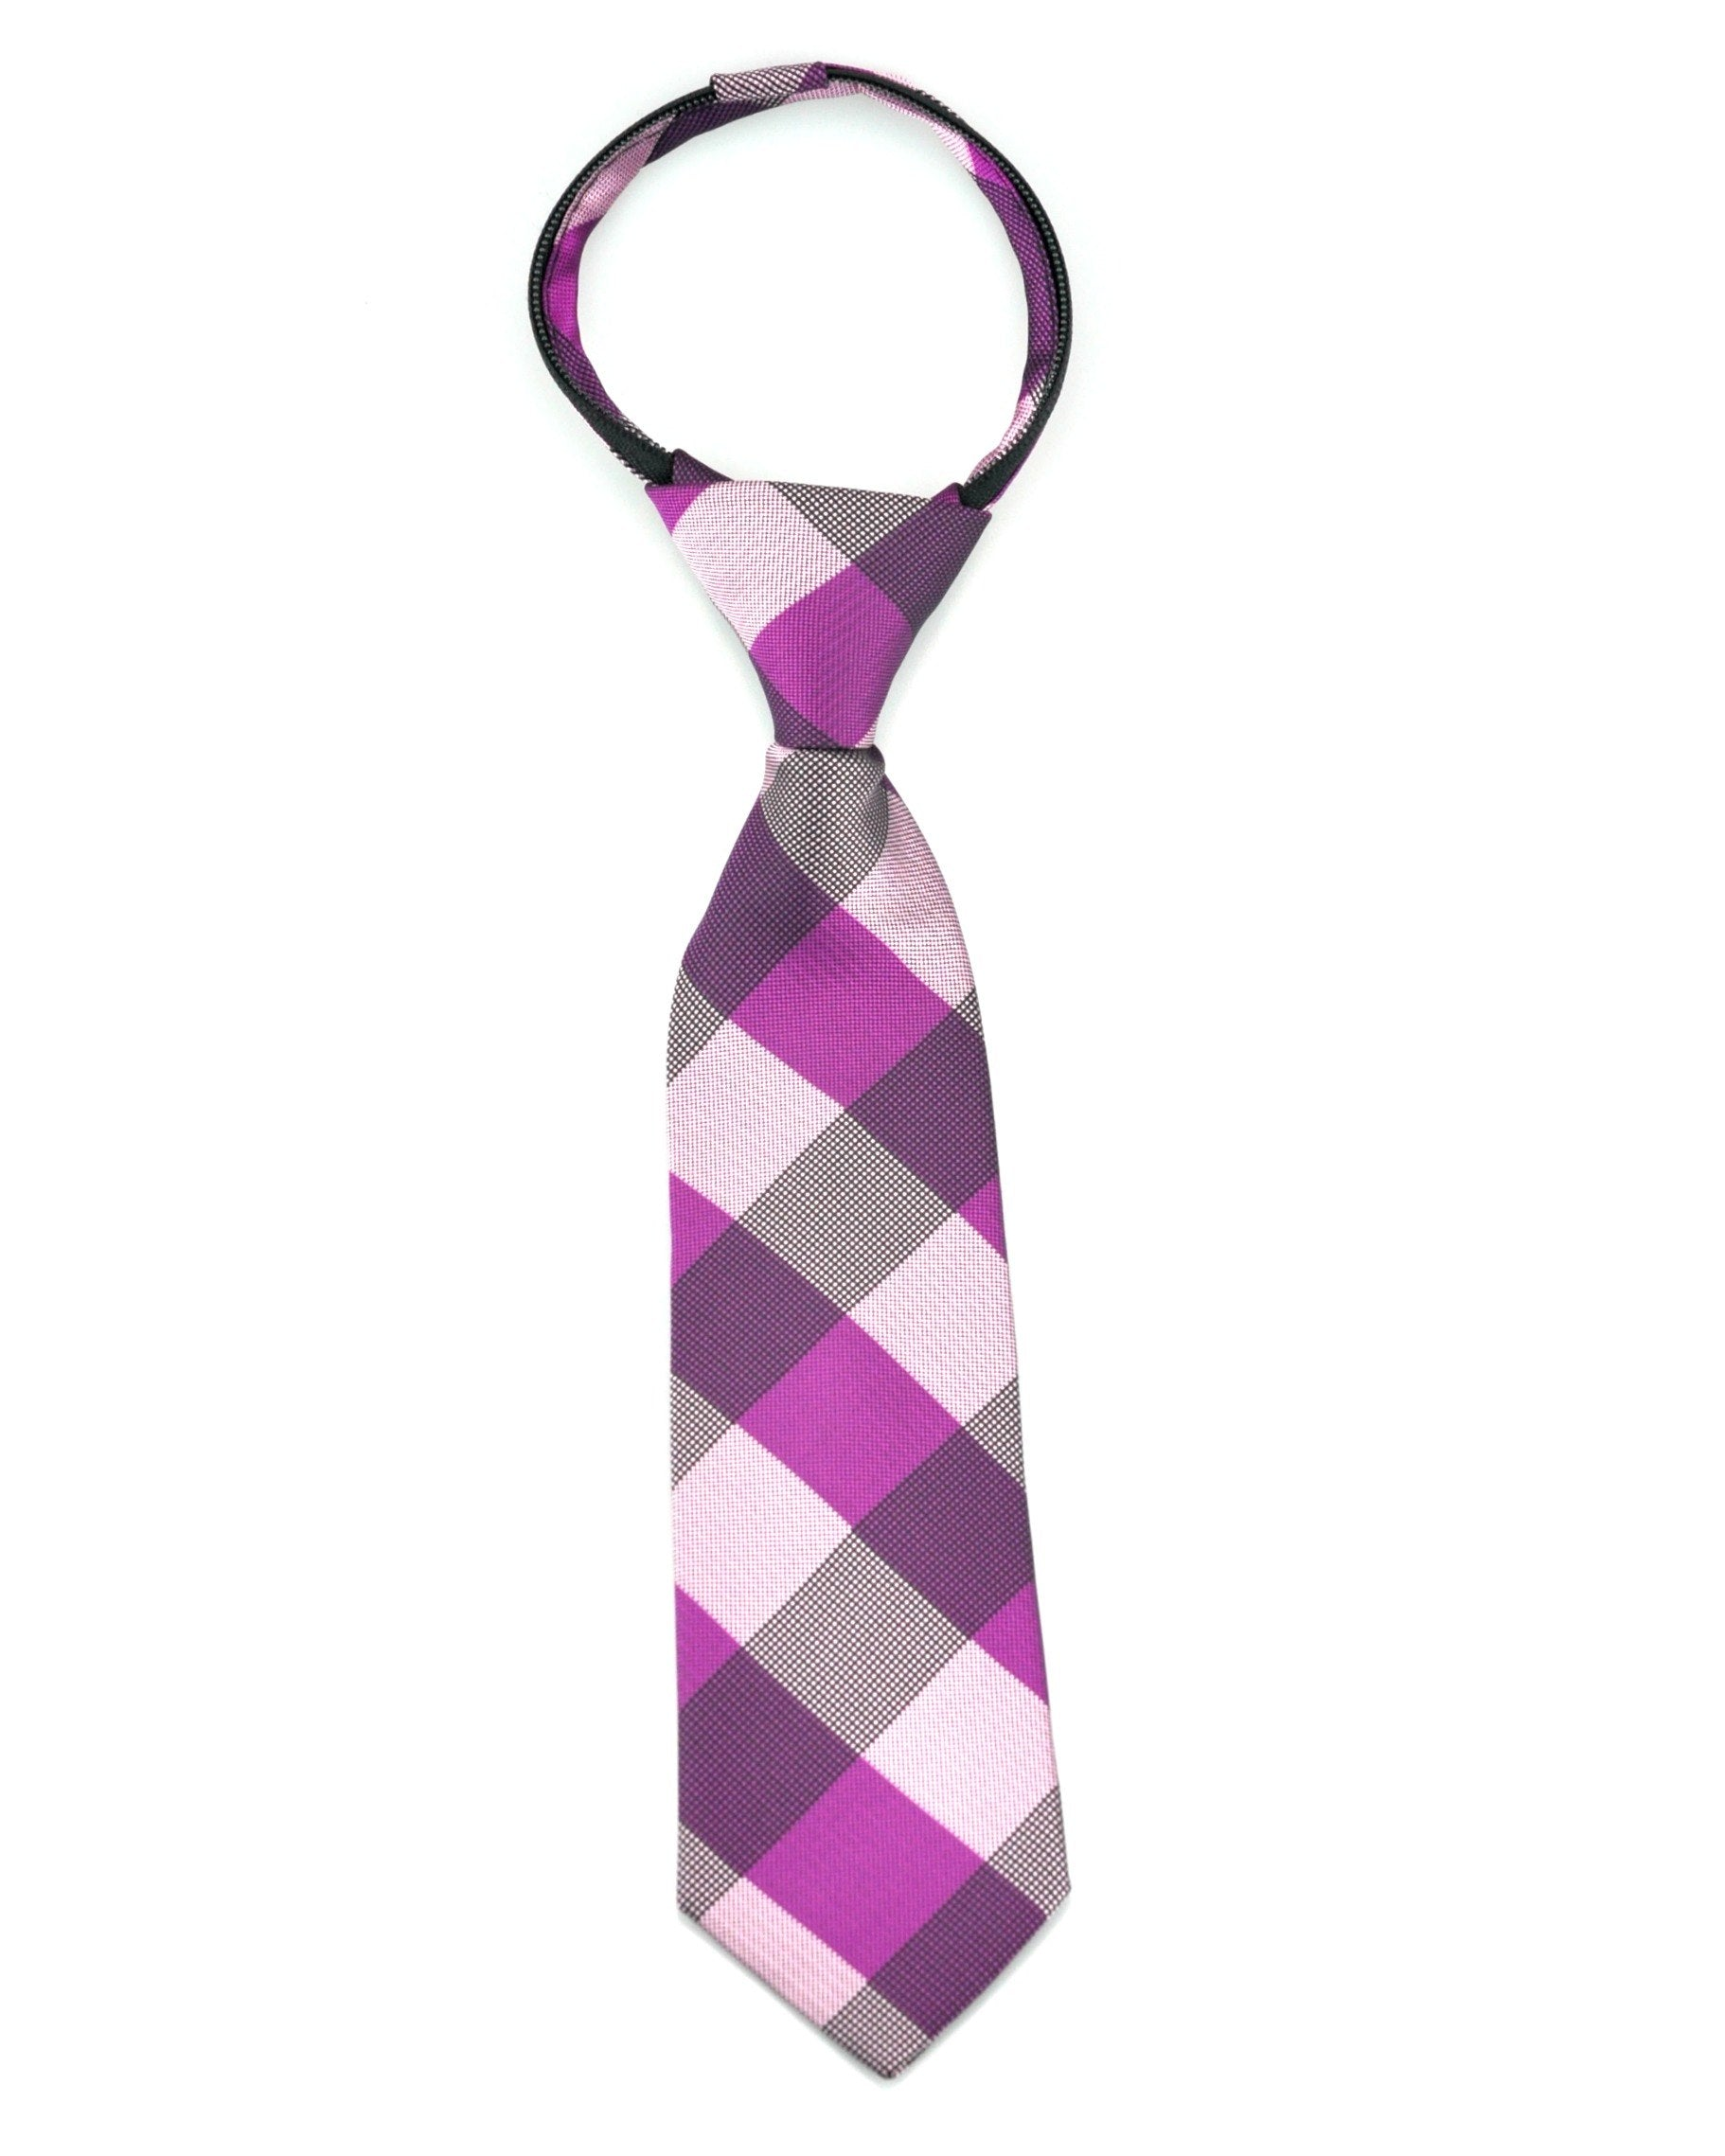 plum-check-zipper-tie.jpg